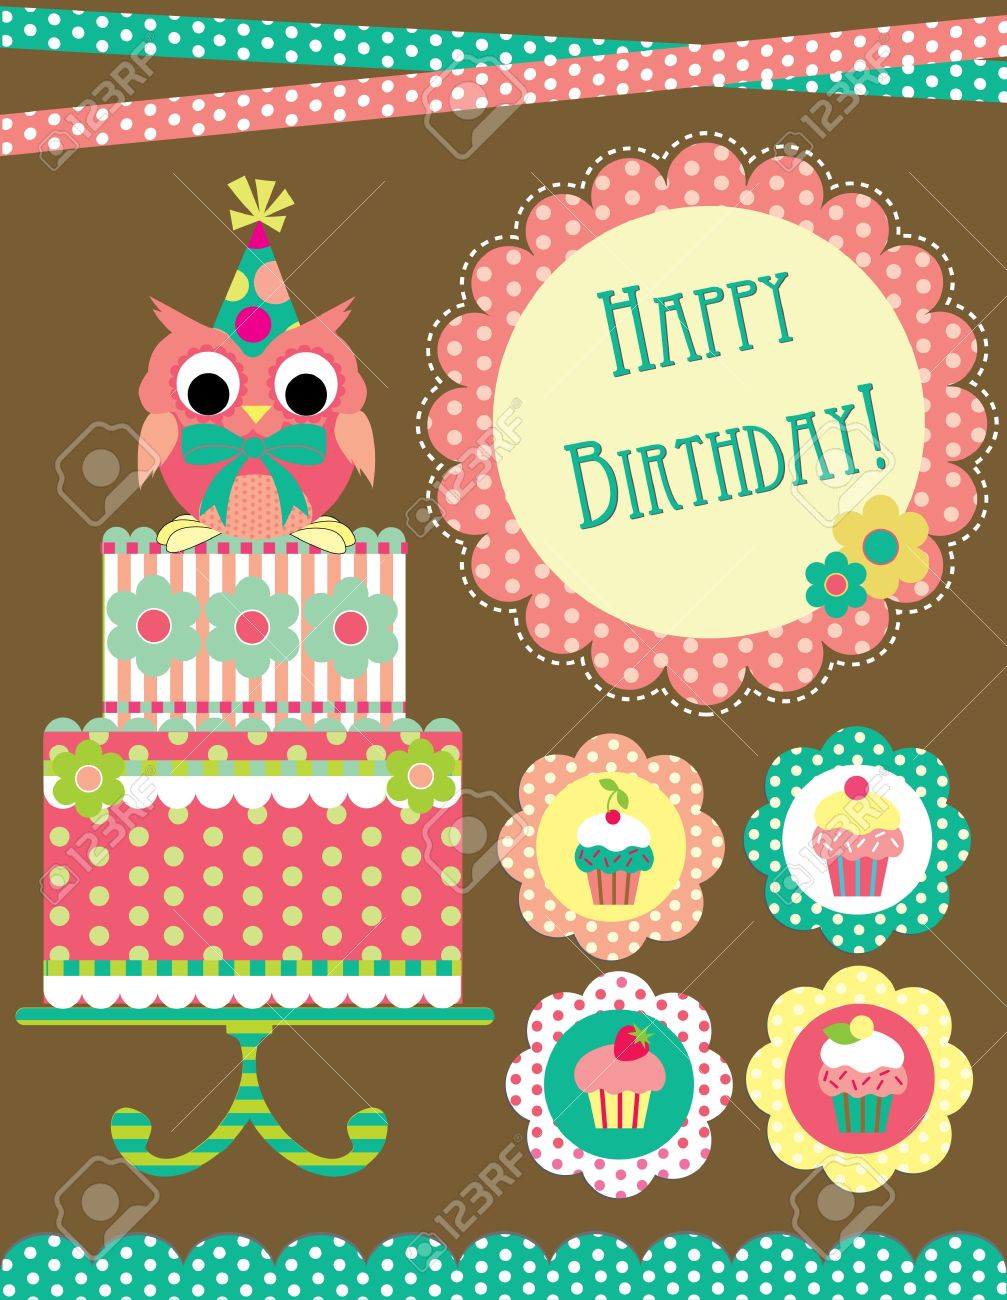 Happy Birthday Card Design Vector Illustraton Royalty Free – Happy Birthday Card Design Free